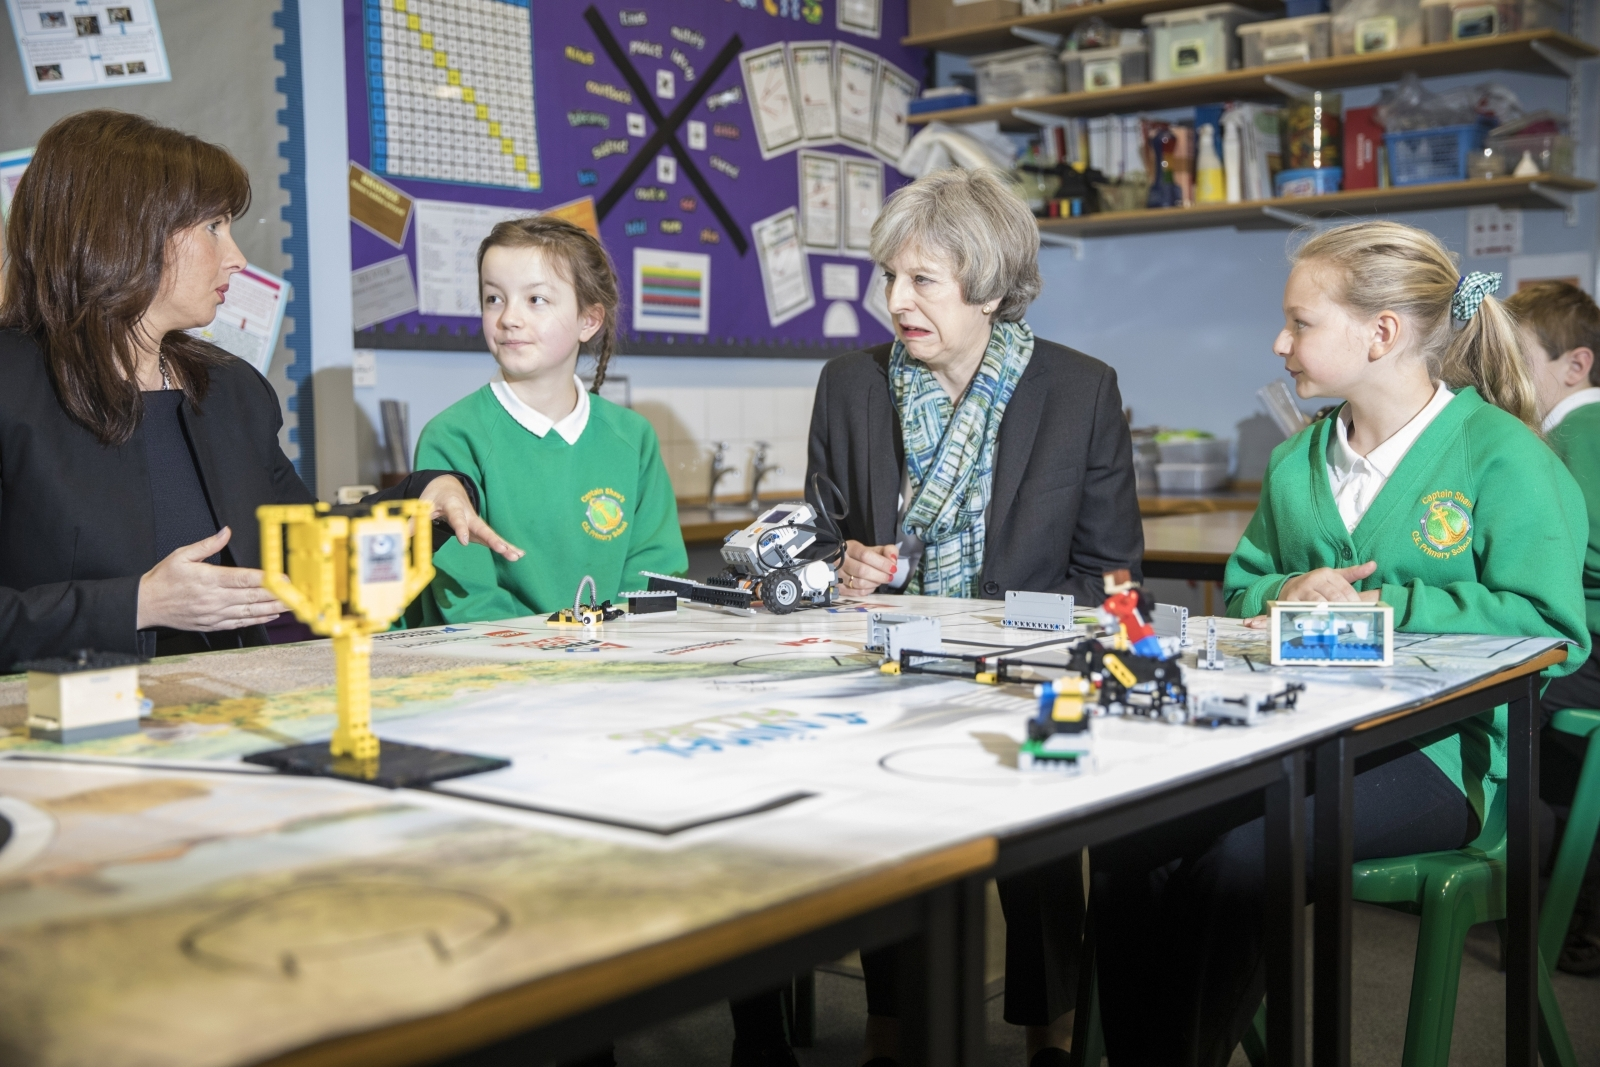 Theresa May visits a school